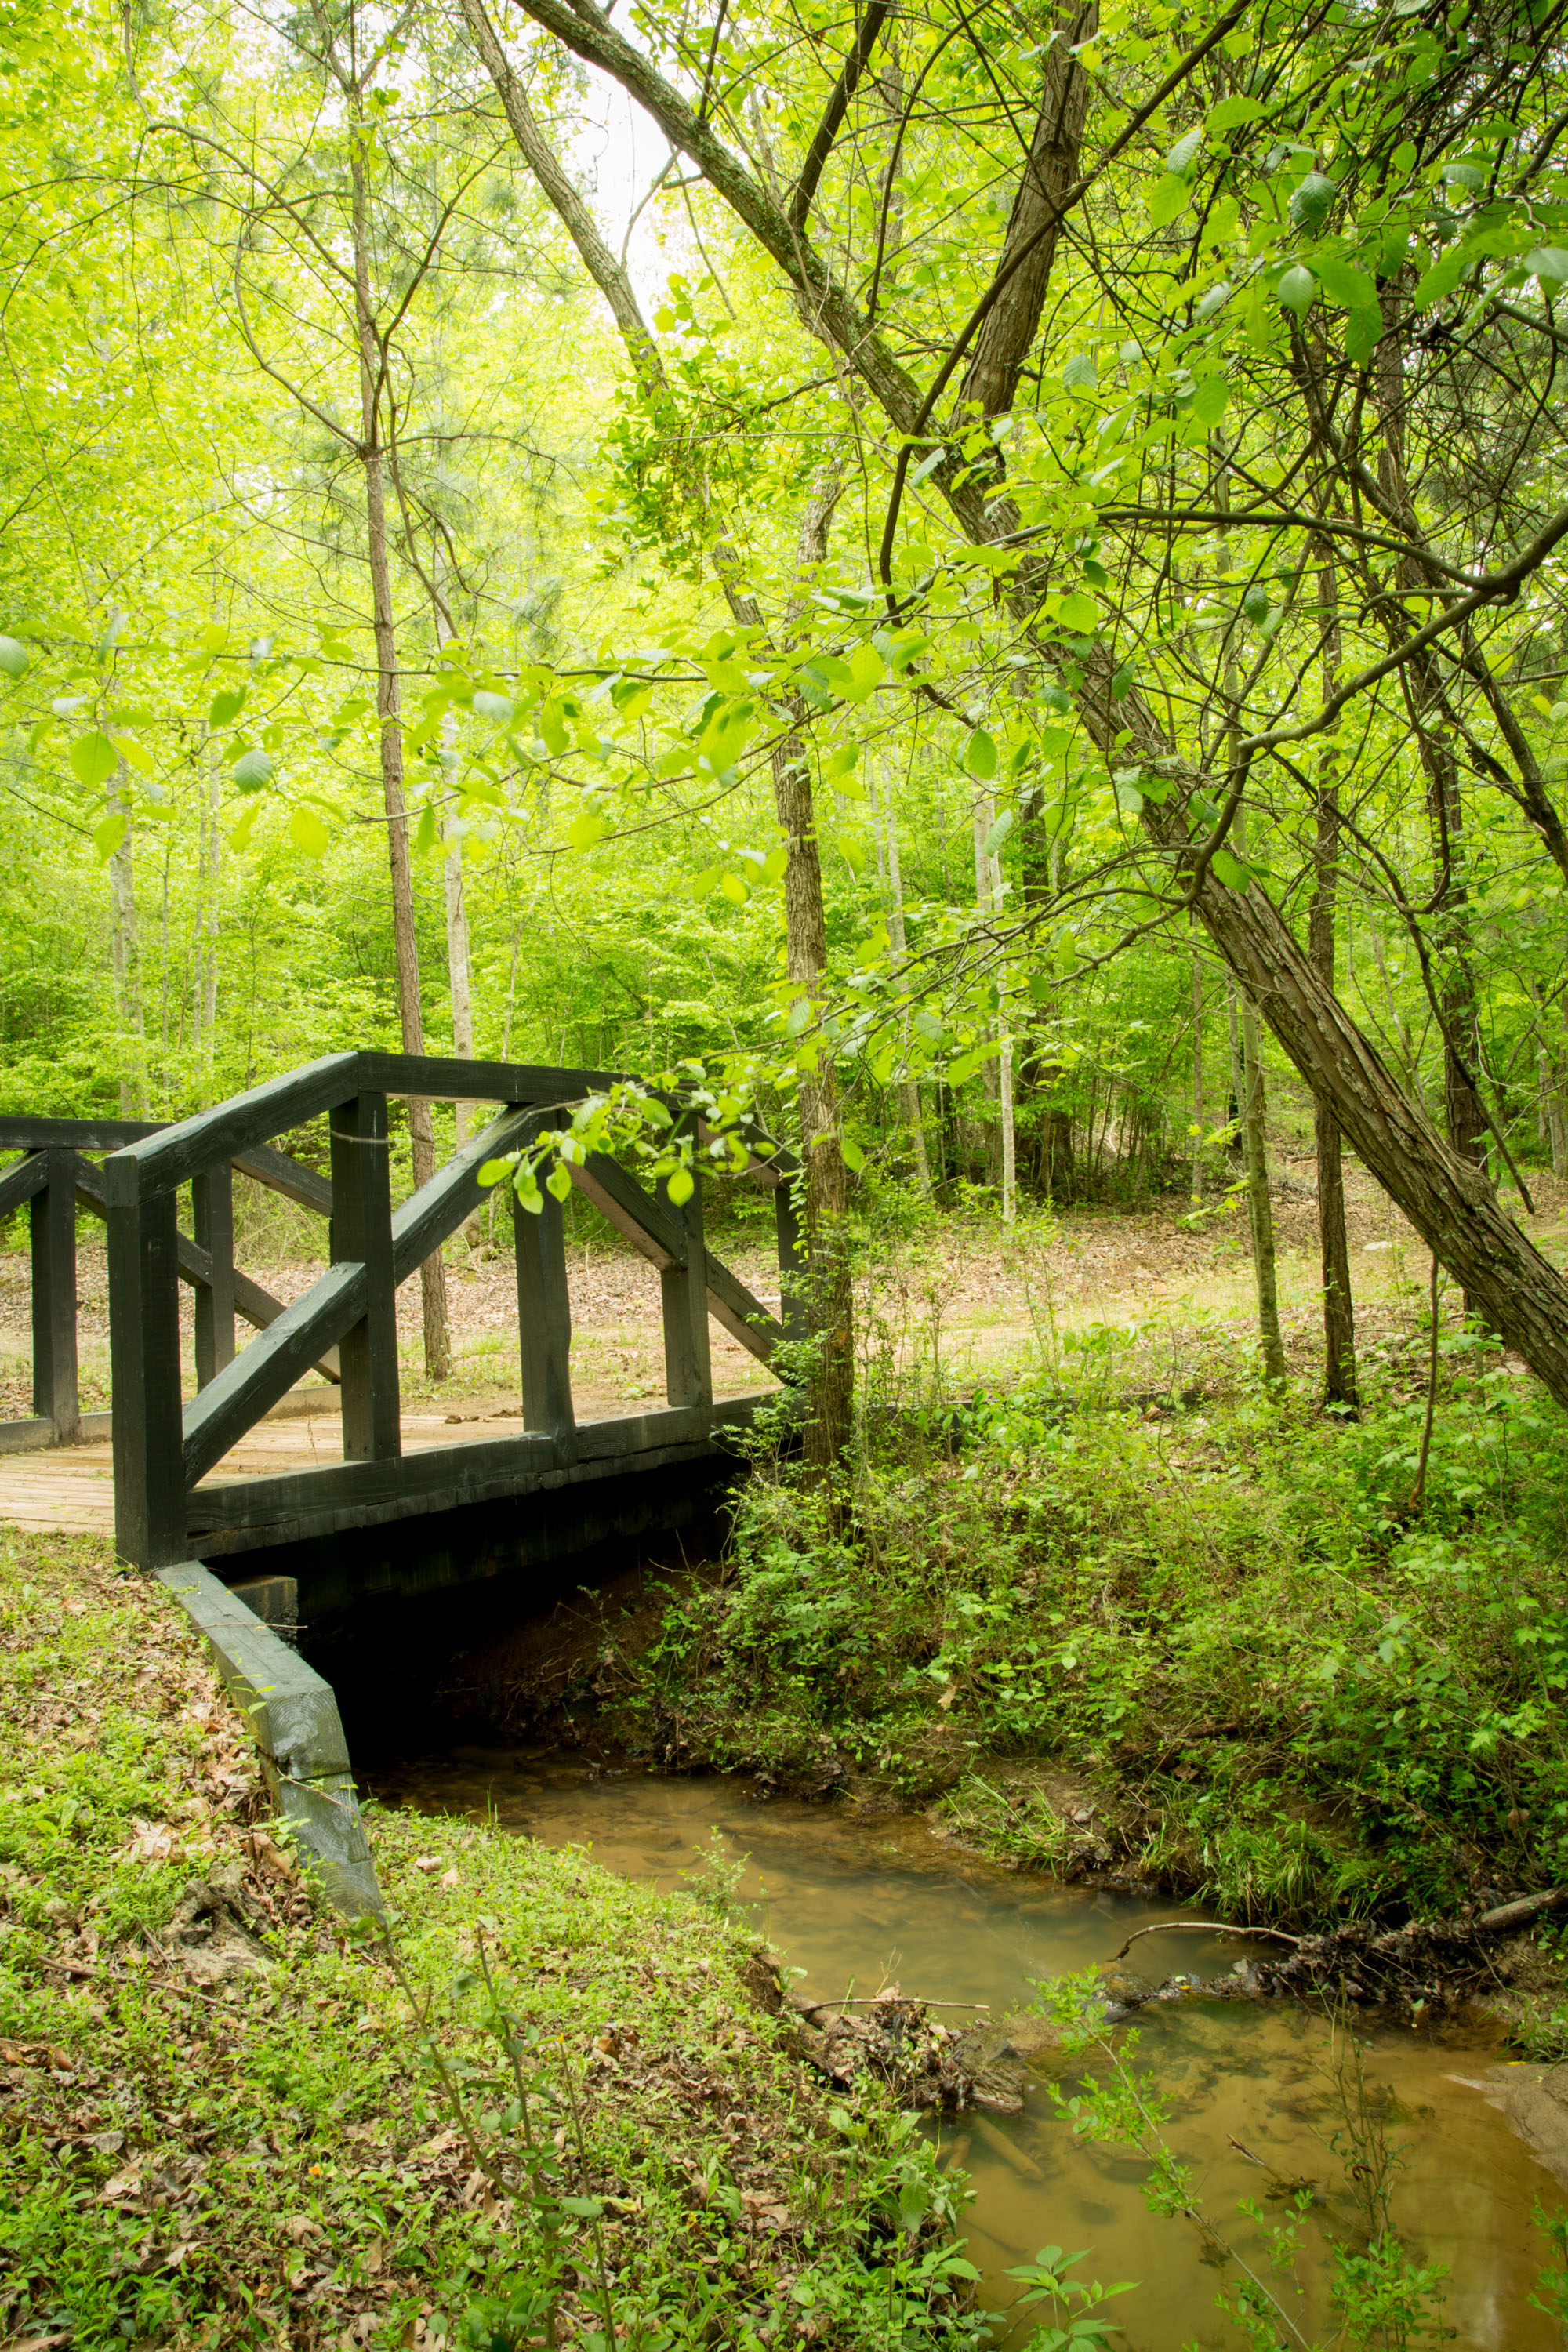 Bridge over the creek